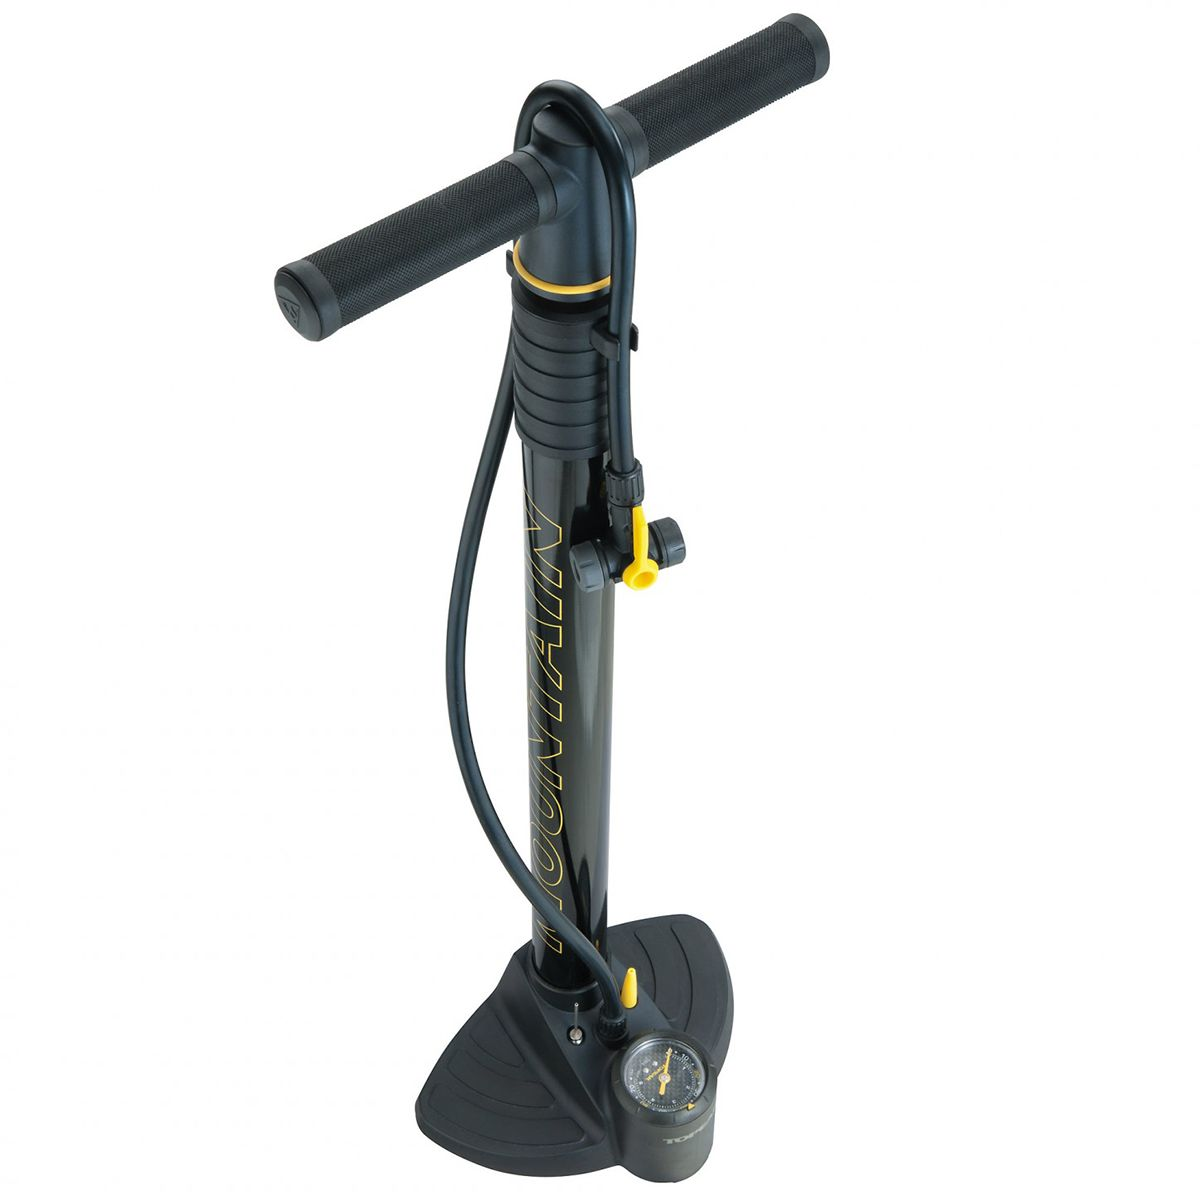 JoeBlow Mountain floor pump